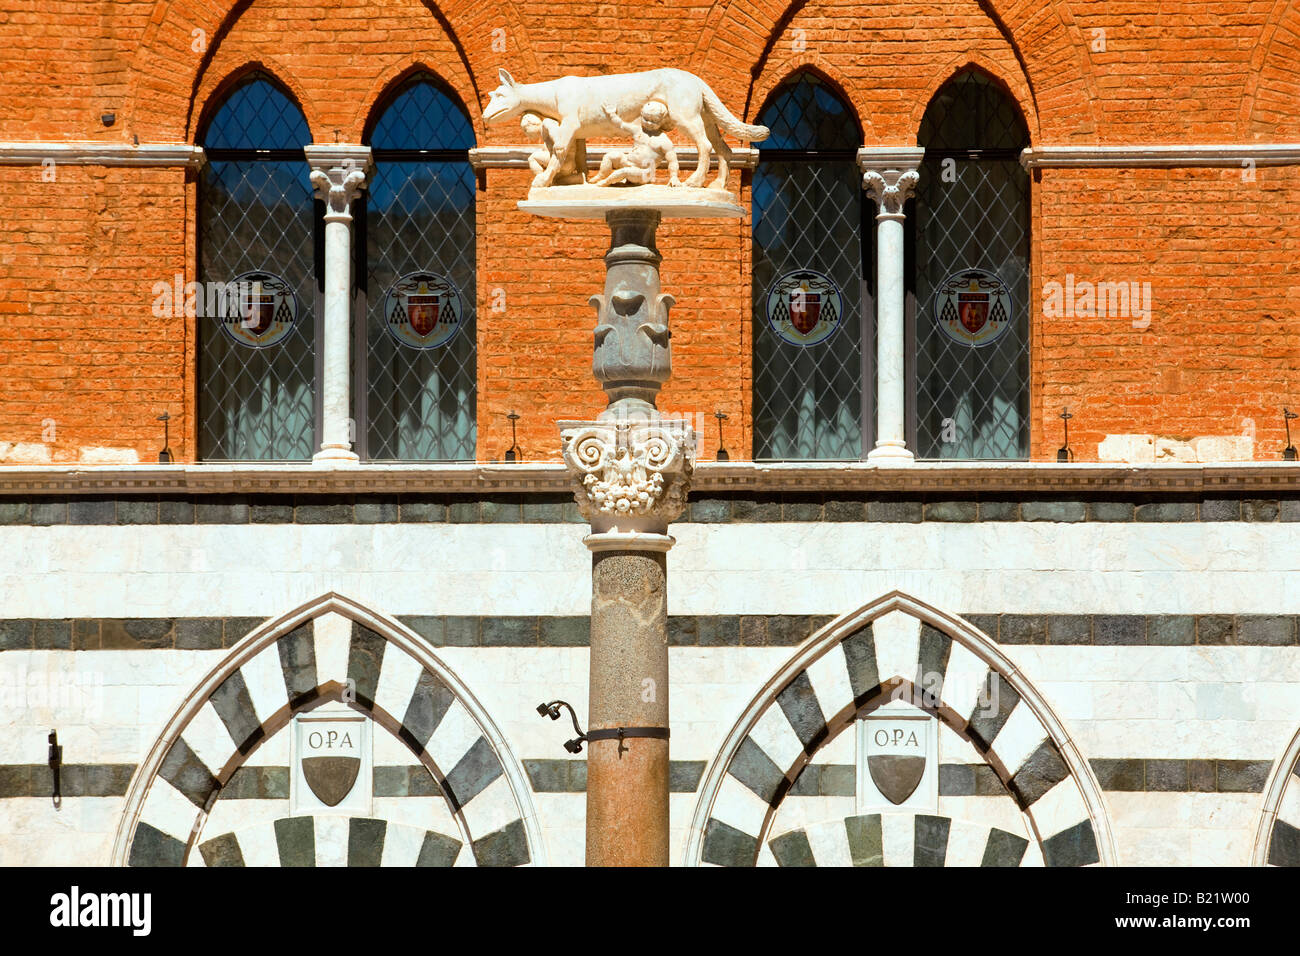 statue of Remus and romulus with Wolf in Siena - Stock Image